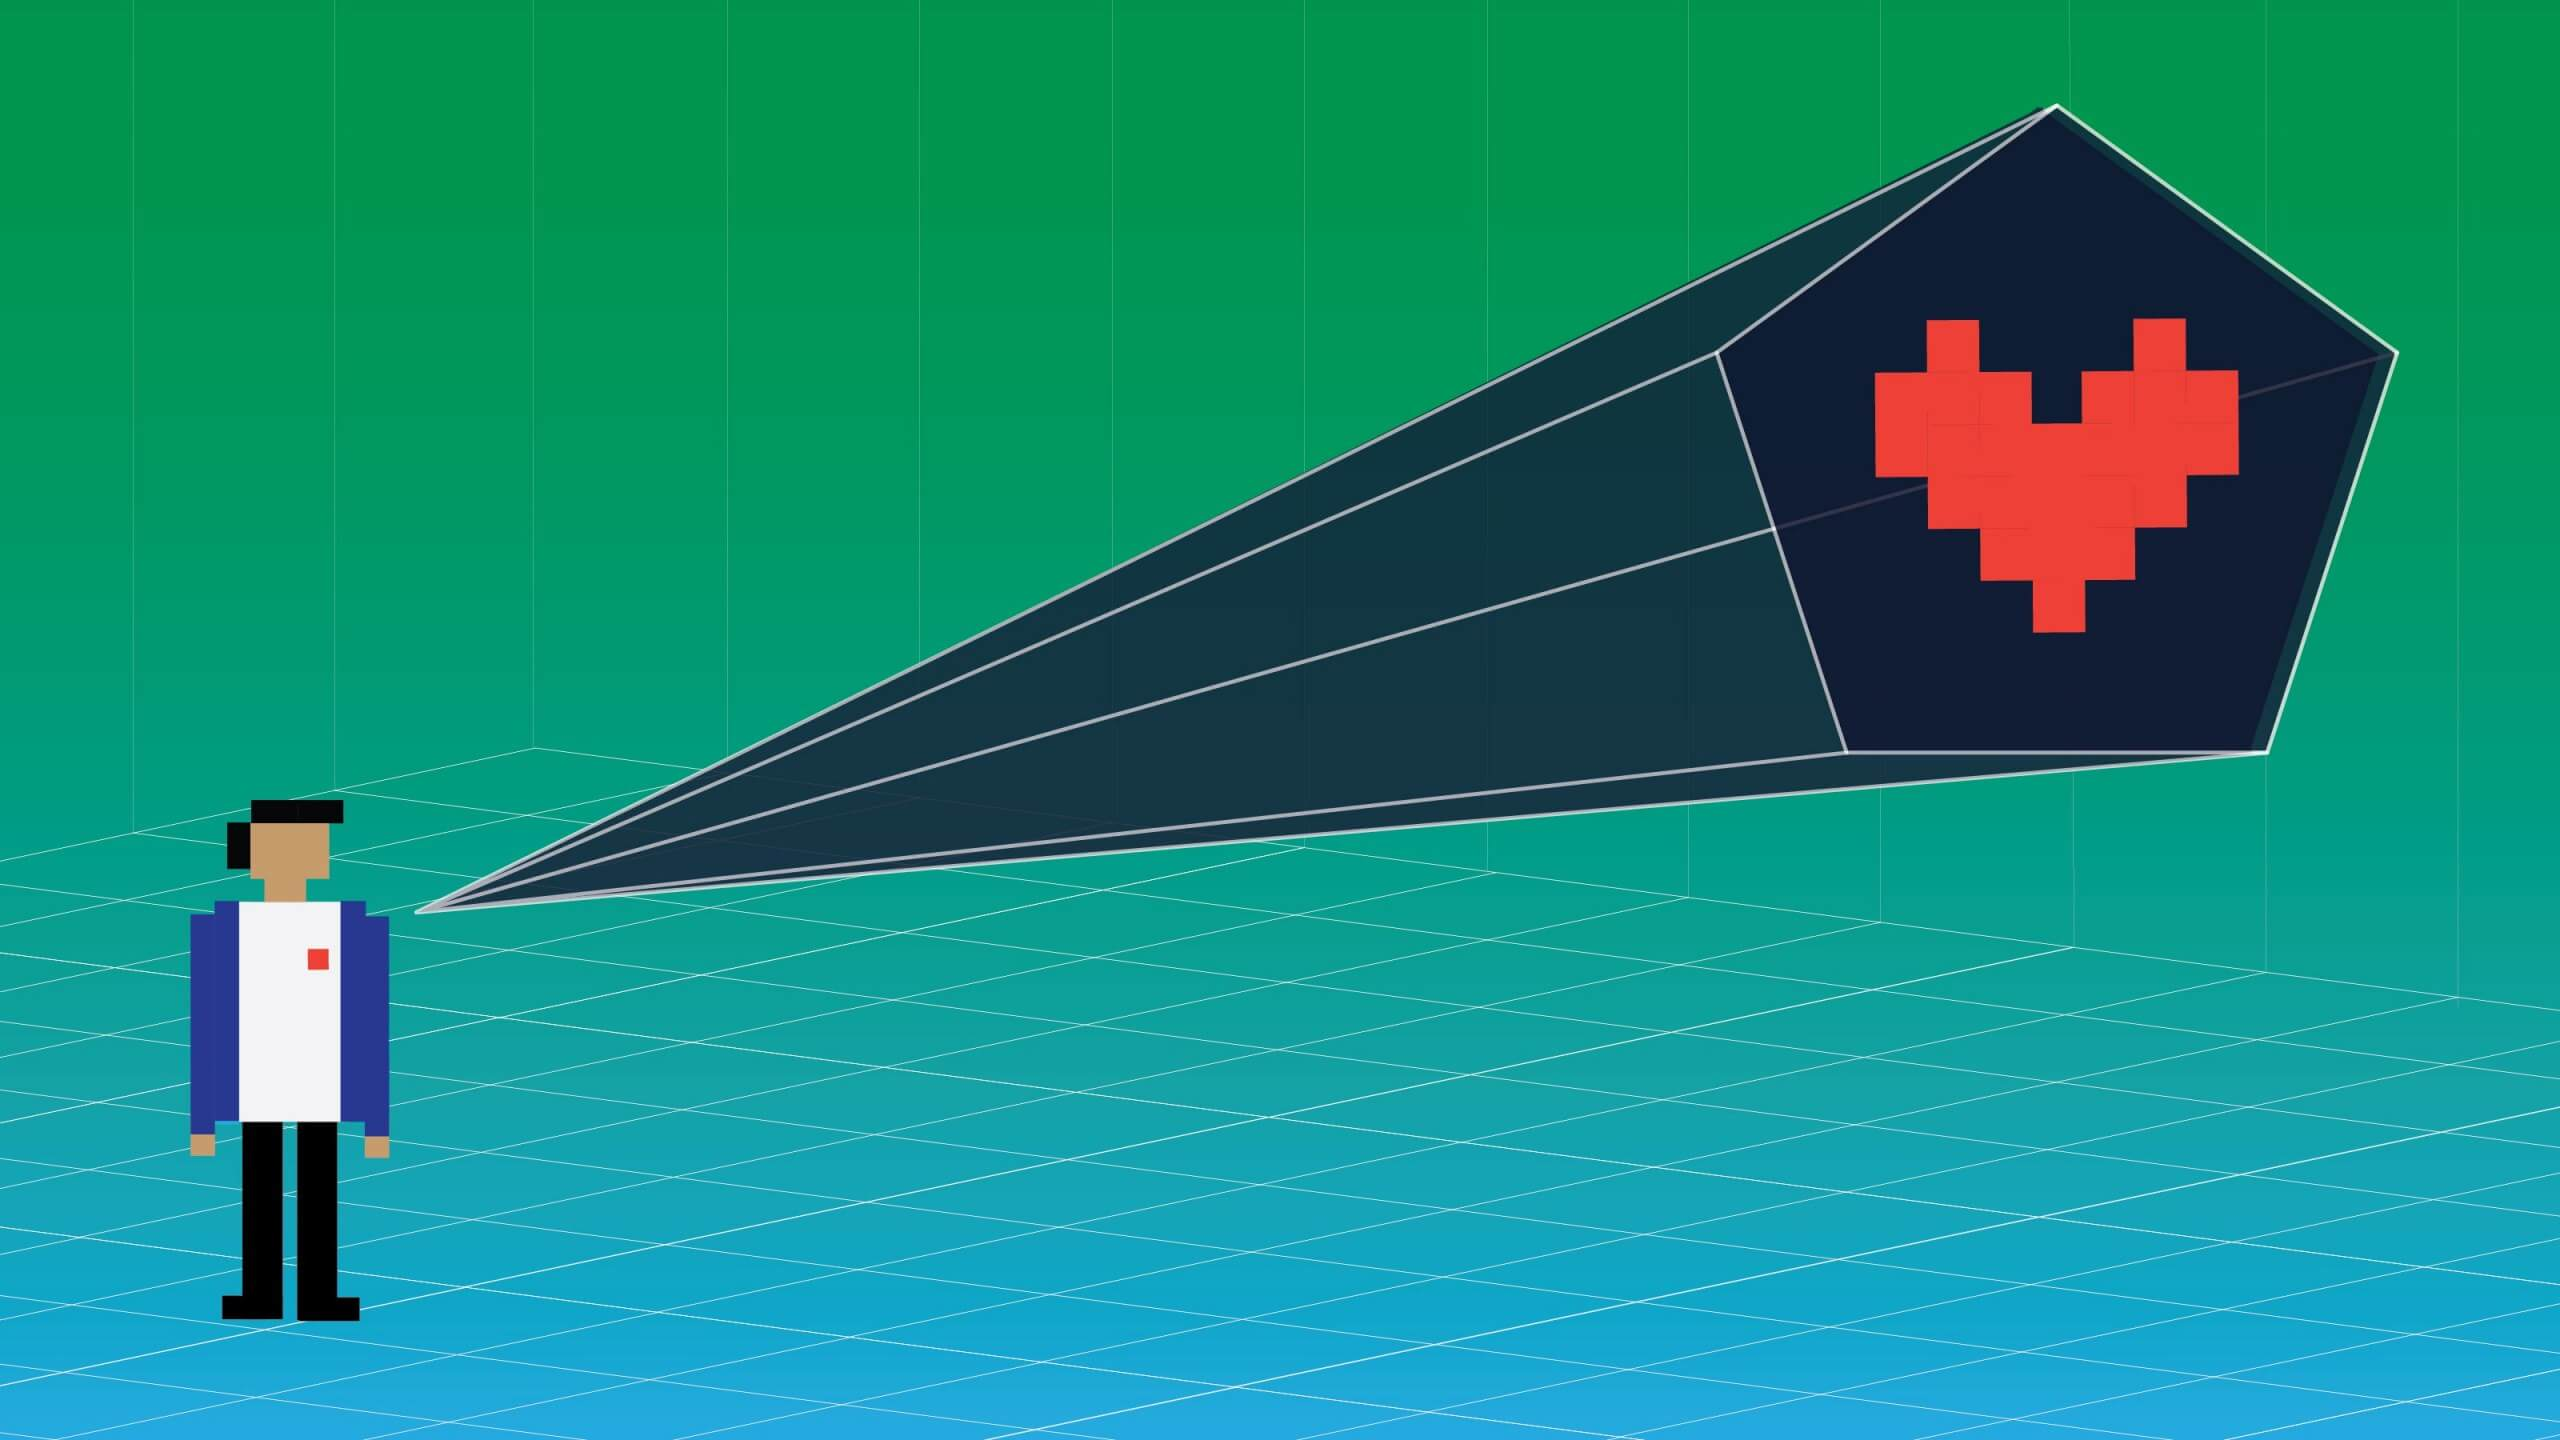 'Jetson' is a Pentagon laser that can identify people by heartbeat